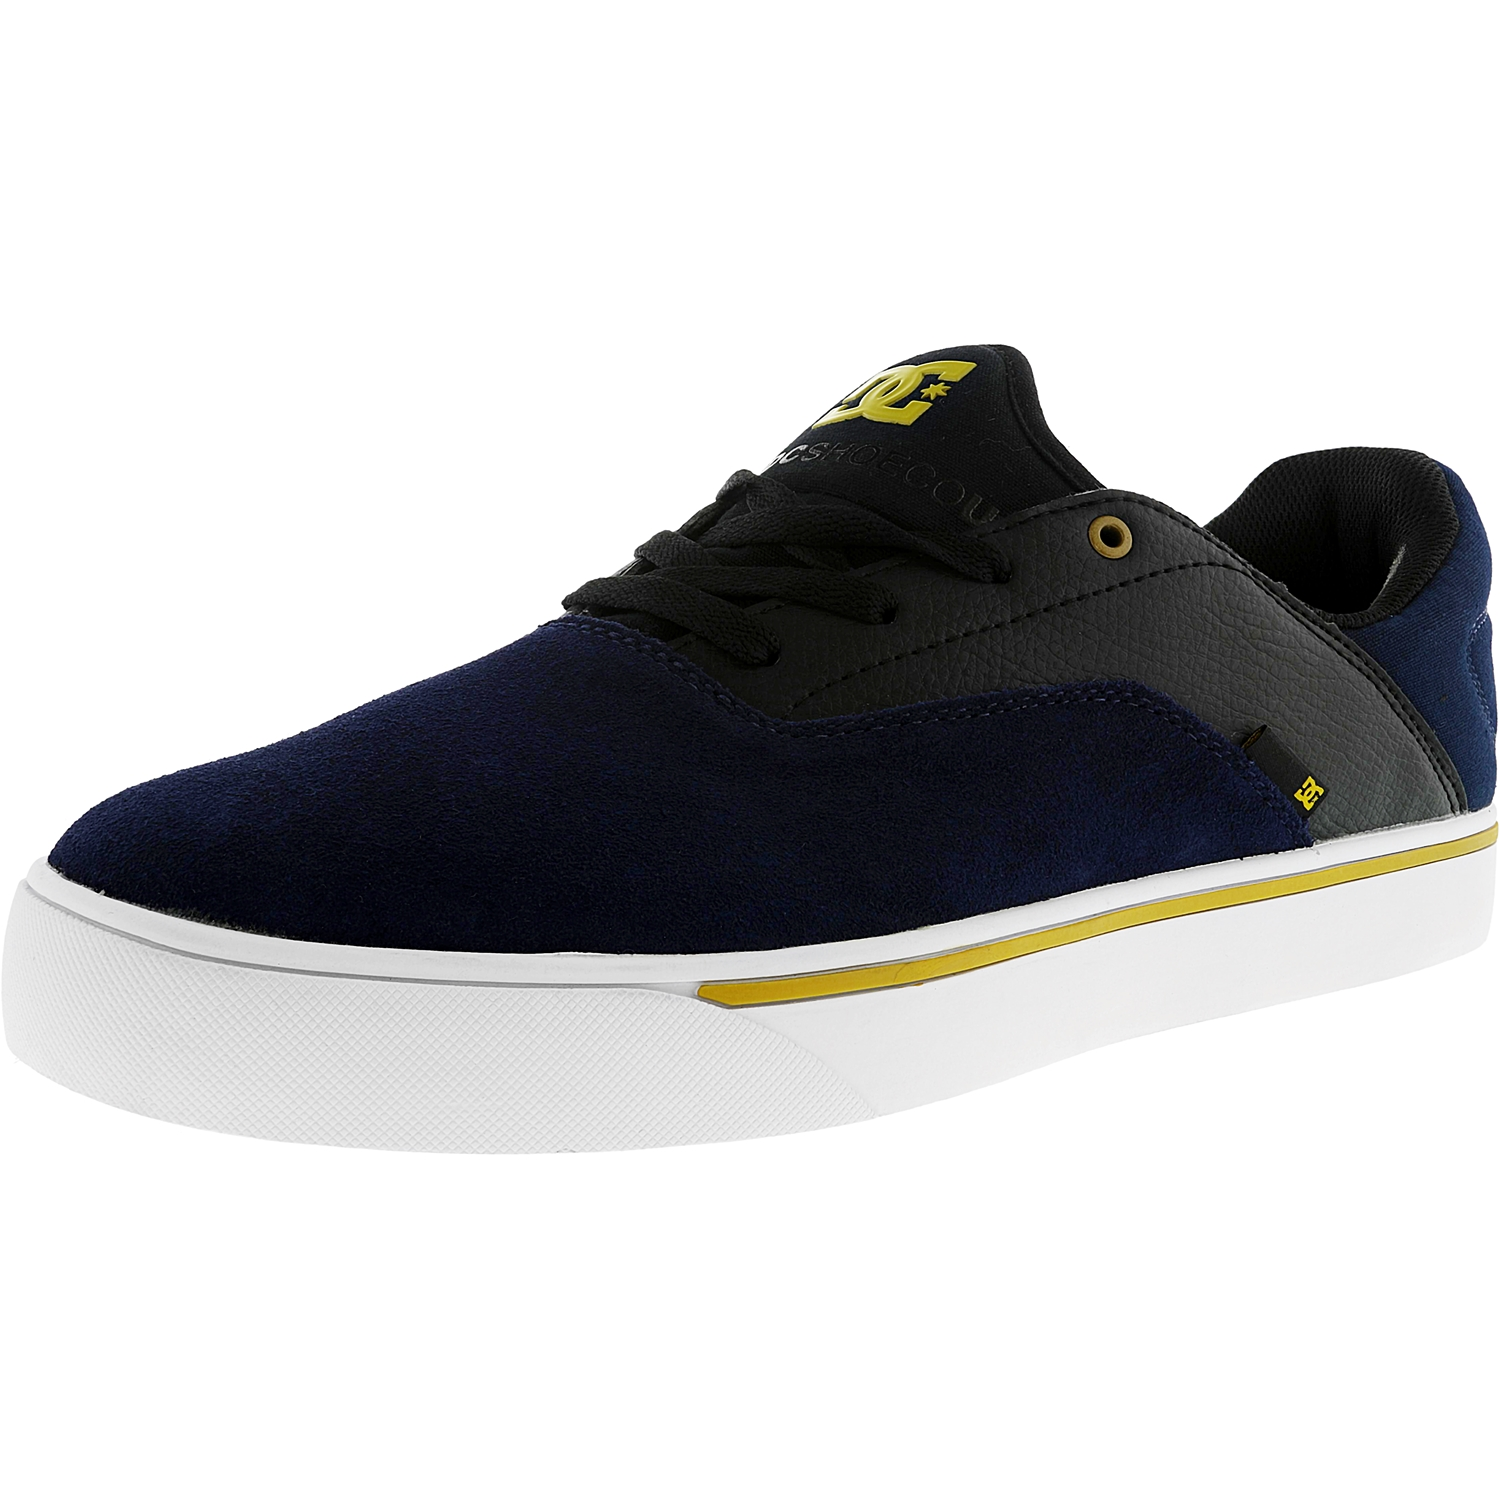 Dc Men's Wallon S Navy Ankle-High Suede Fashion Sneaker - 13M - image 1 of 1